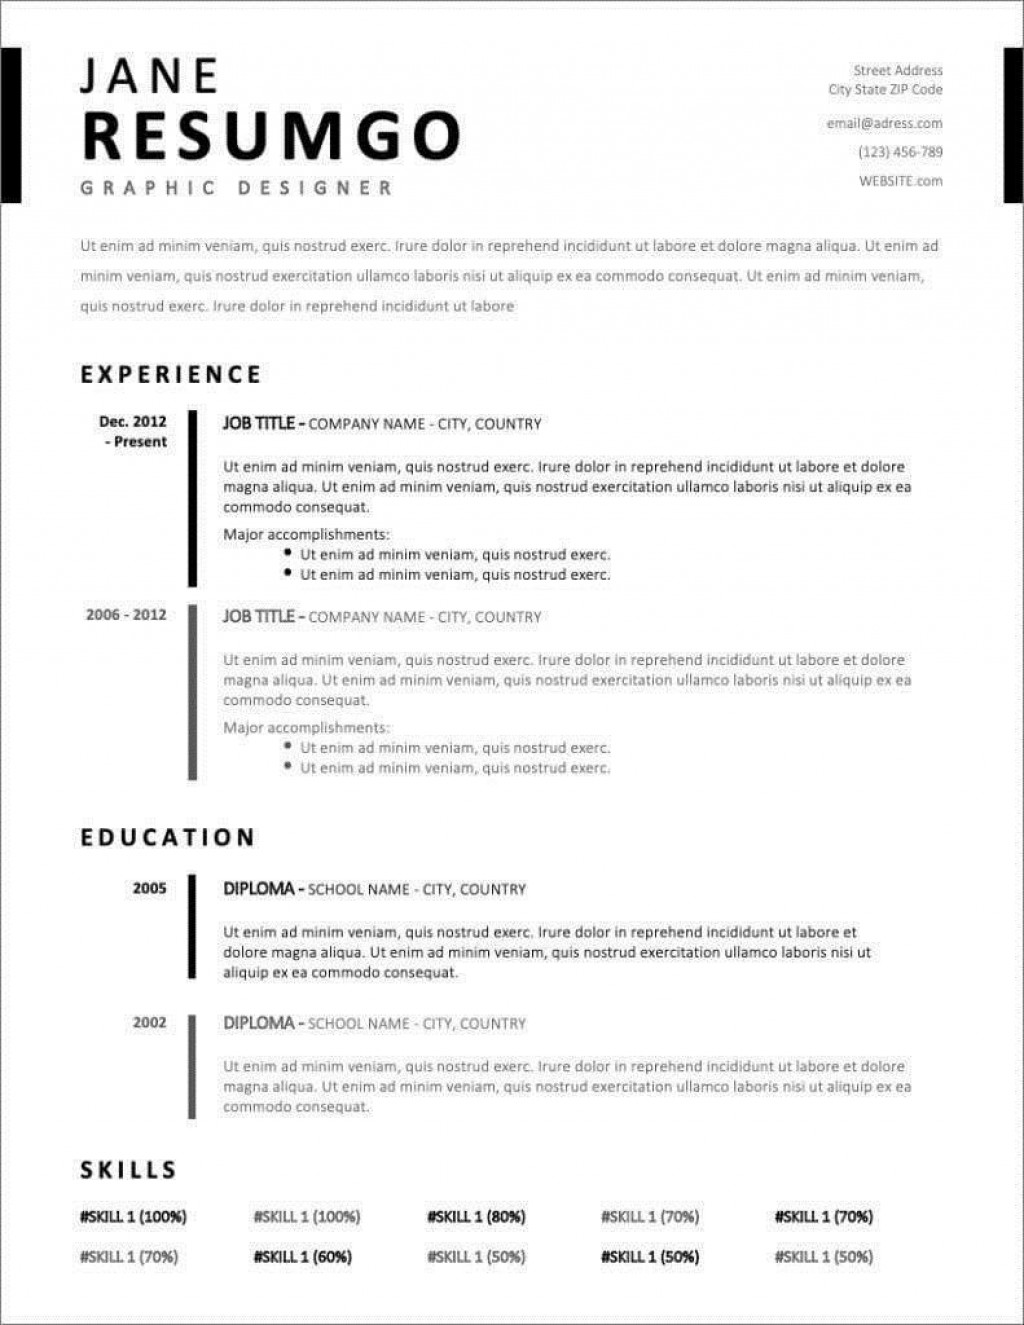 005 Awful Resume Example Pdf Free Download Concept Large